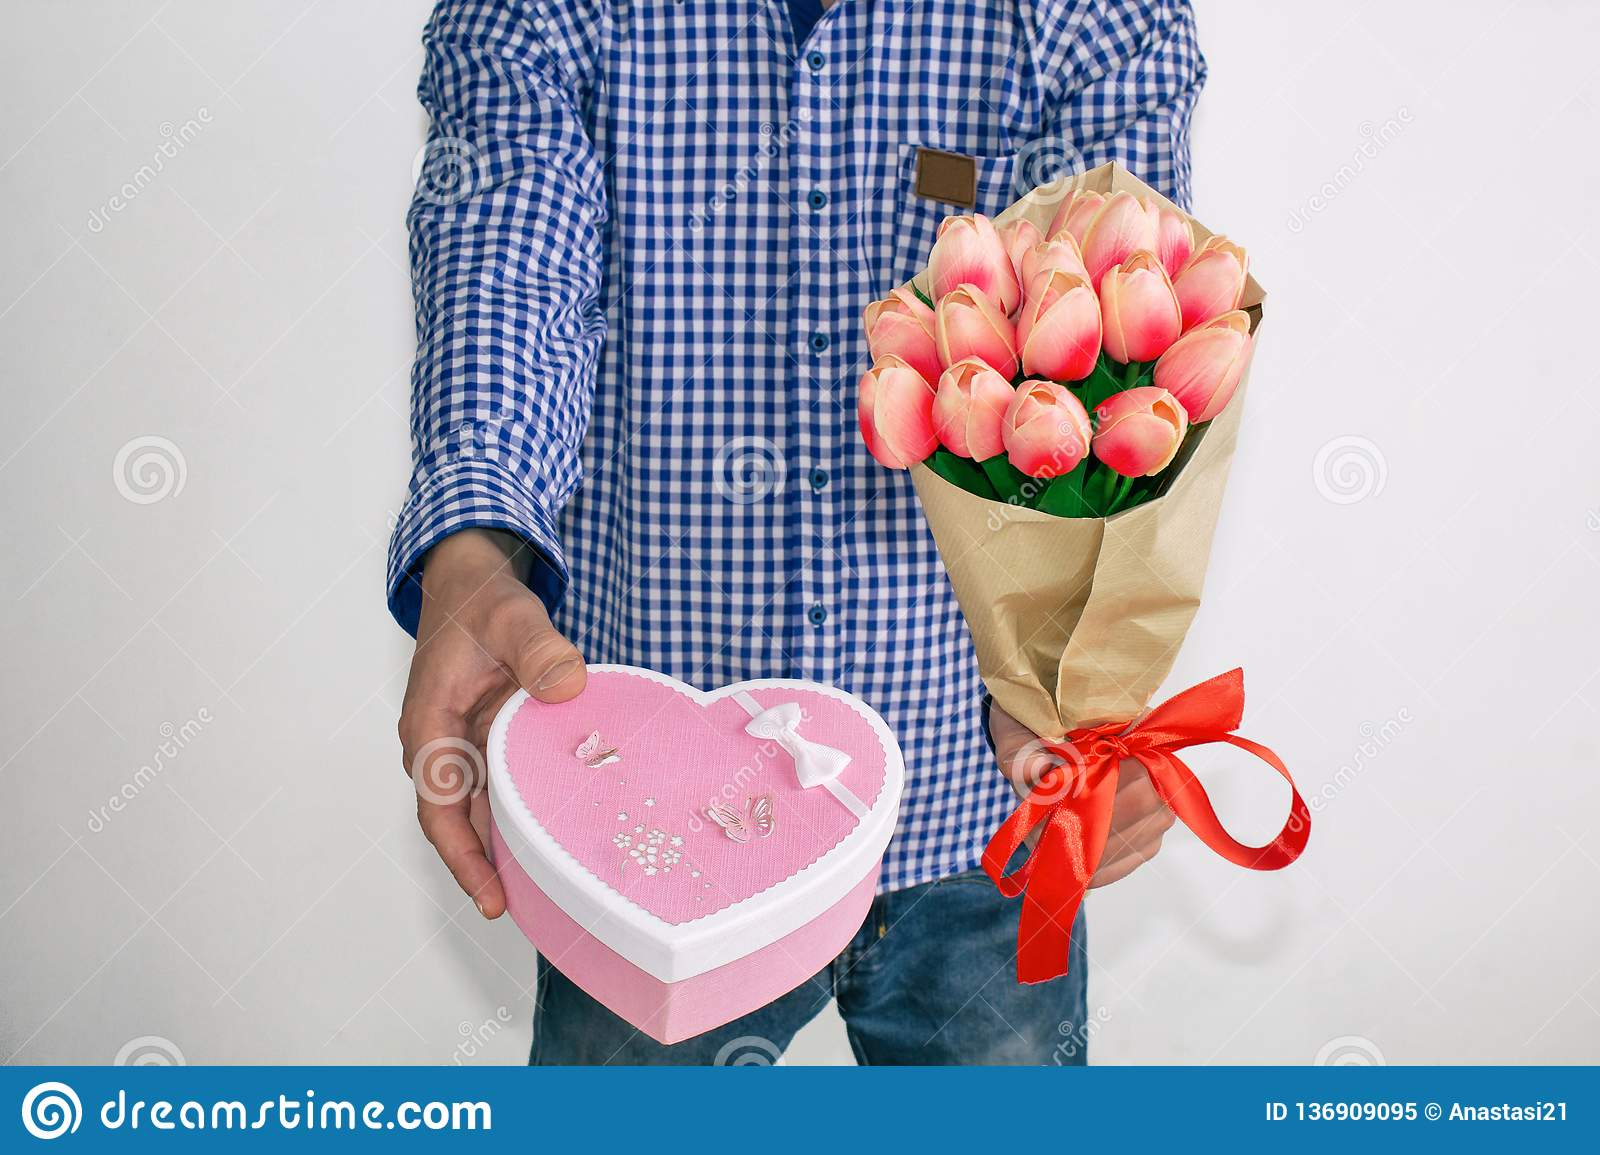 A young man in a blue plaid shirt and jeans, holding out a bouquet of tulips and a heart-shaped gift box, on a white background.